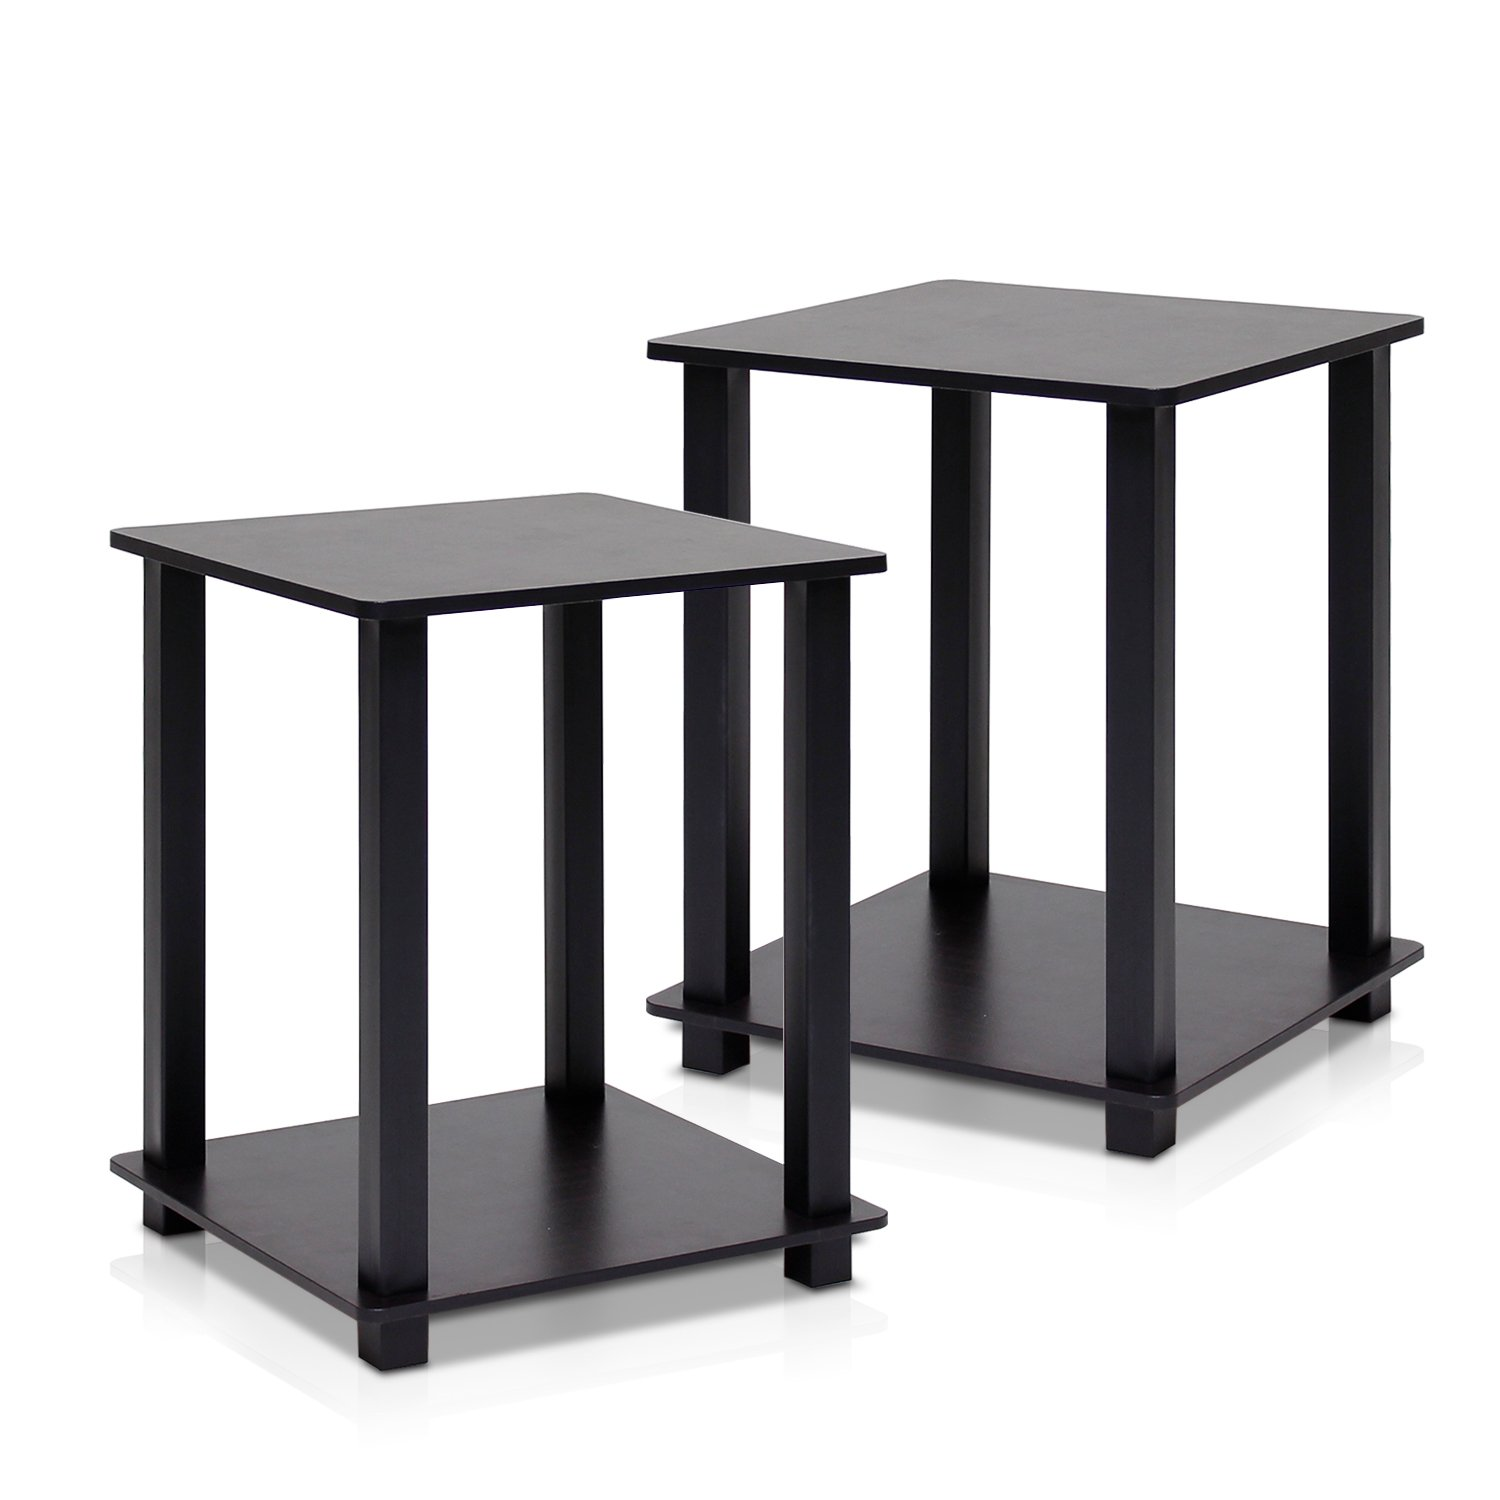 Furinno 12127exbk simplistic end table espressoblack set of 2